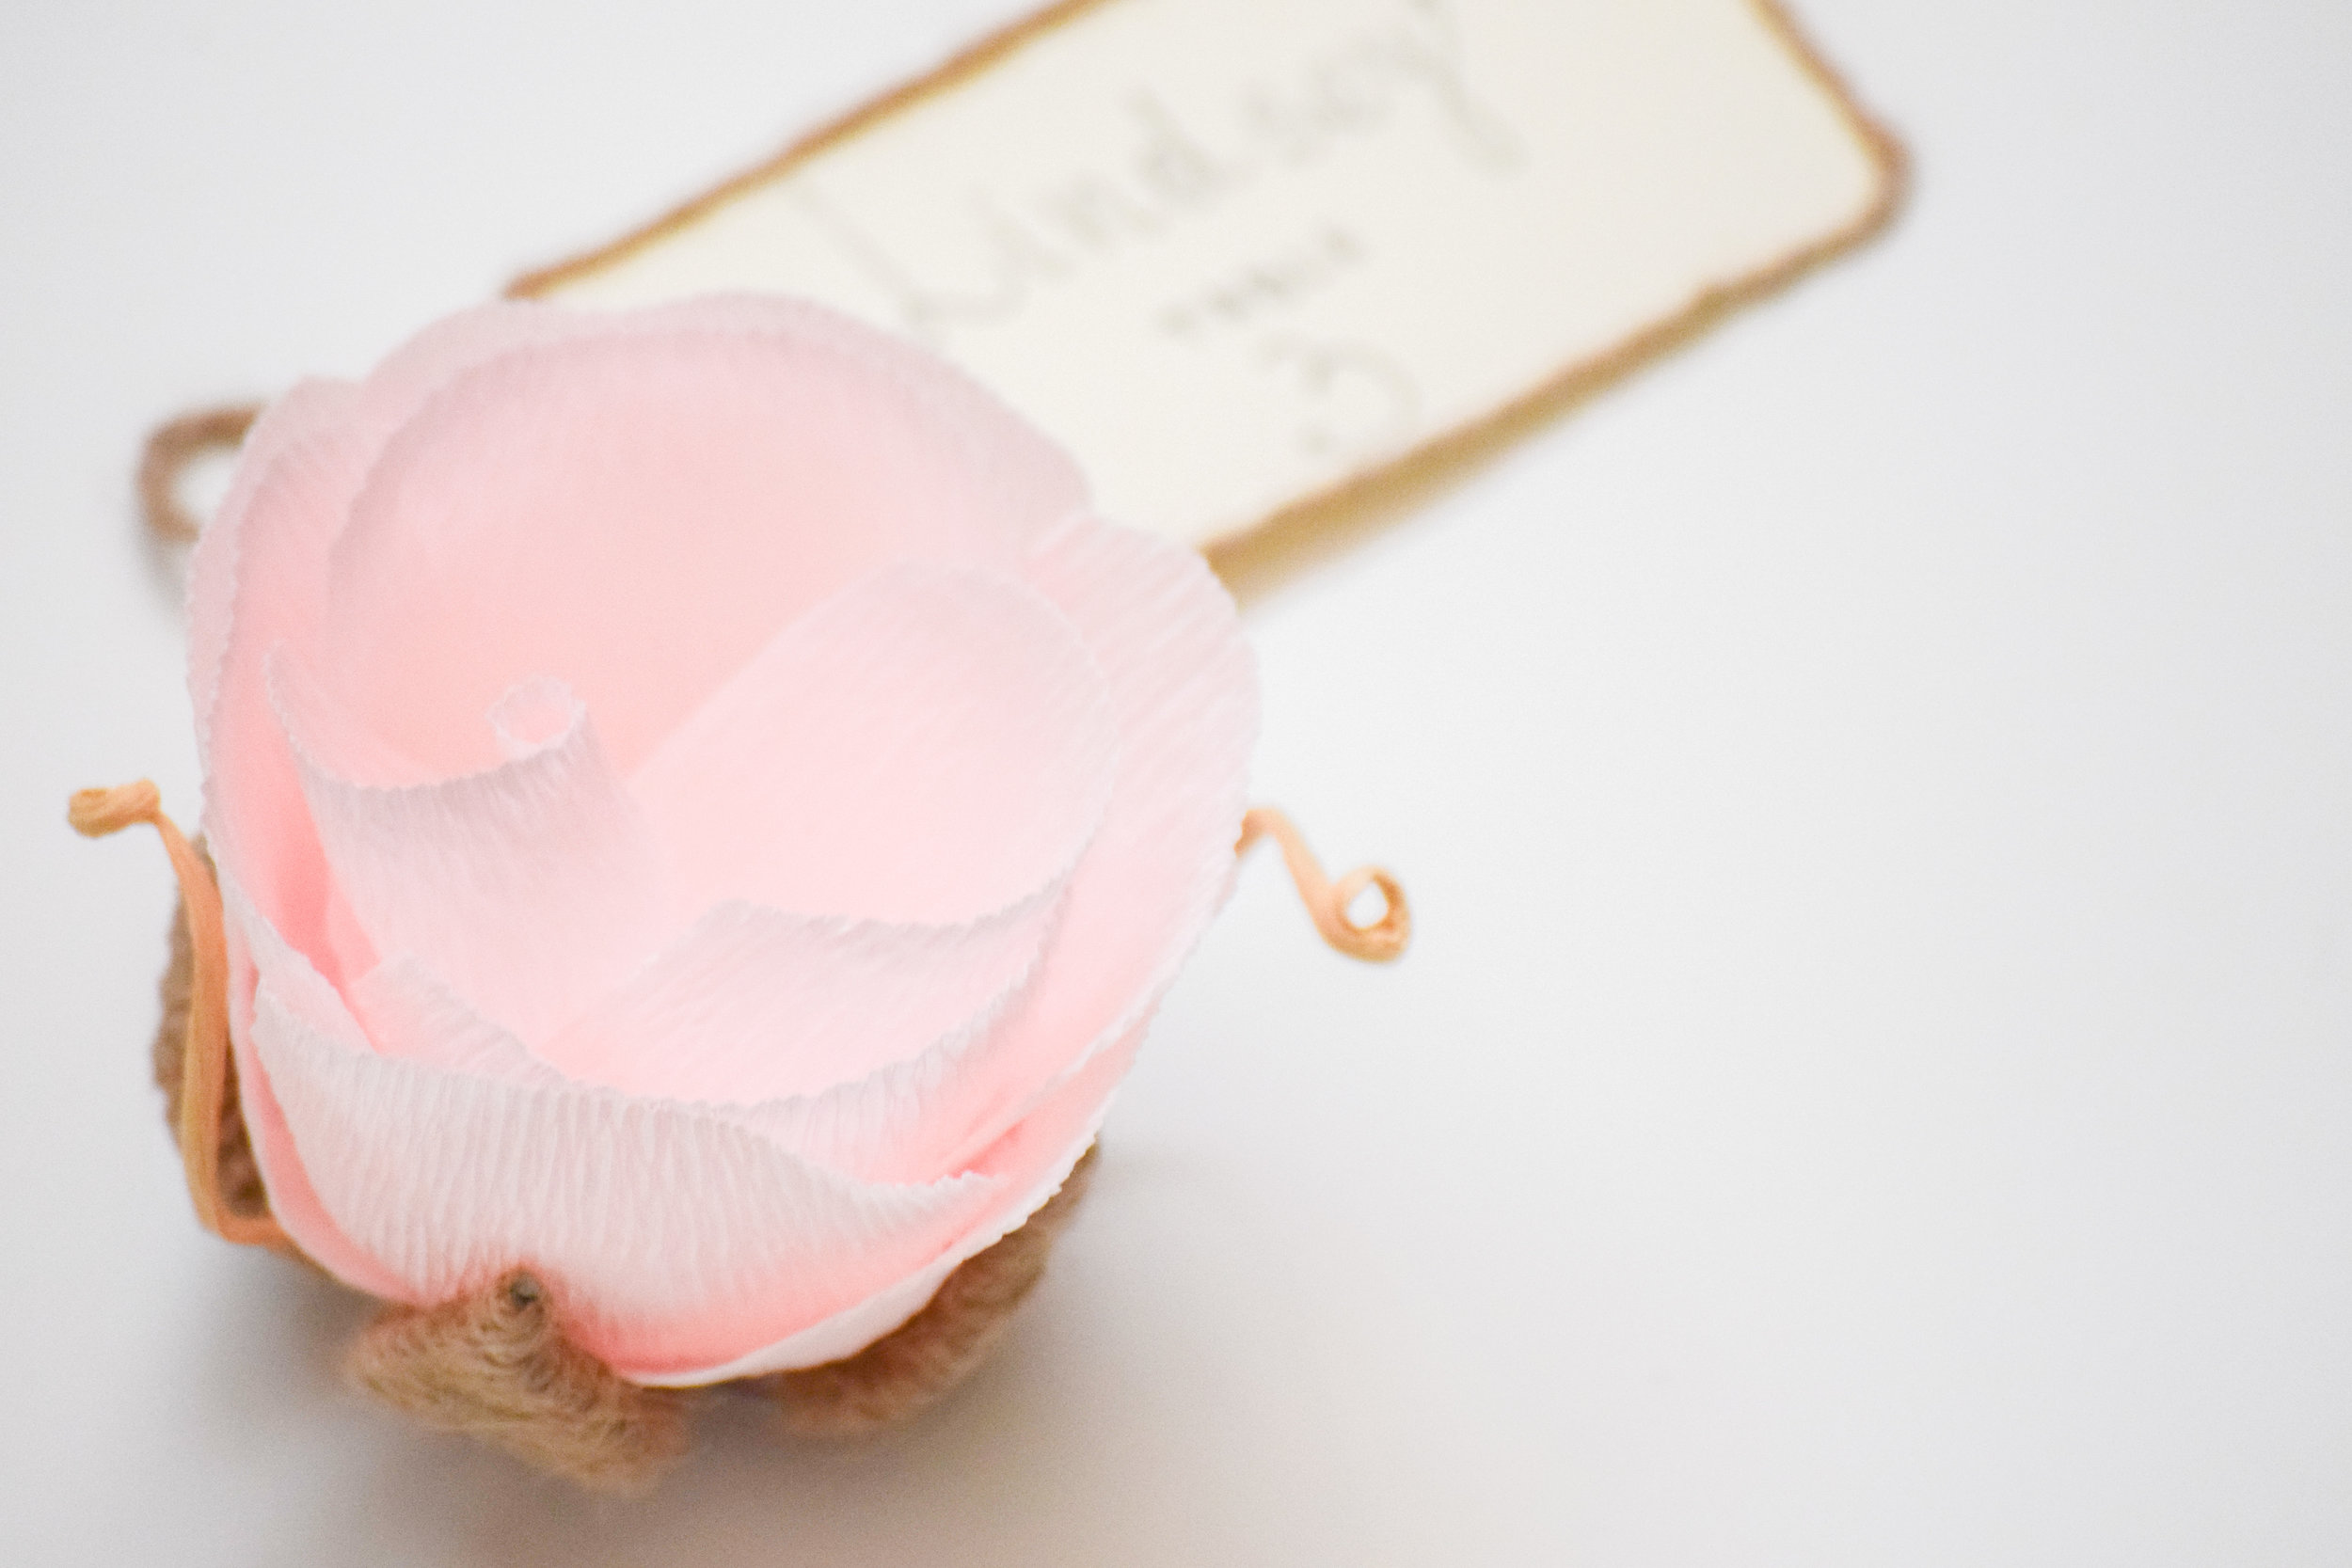 Wedding Seating Card Ideas - The Bridal Boutique | Handmade Paper Flower Seating Cards, VEN Decor Handmade